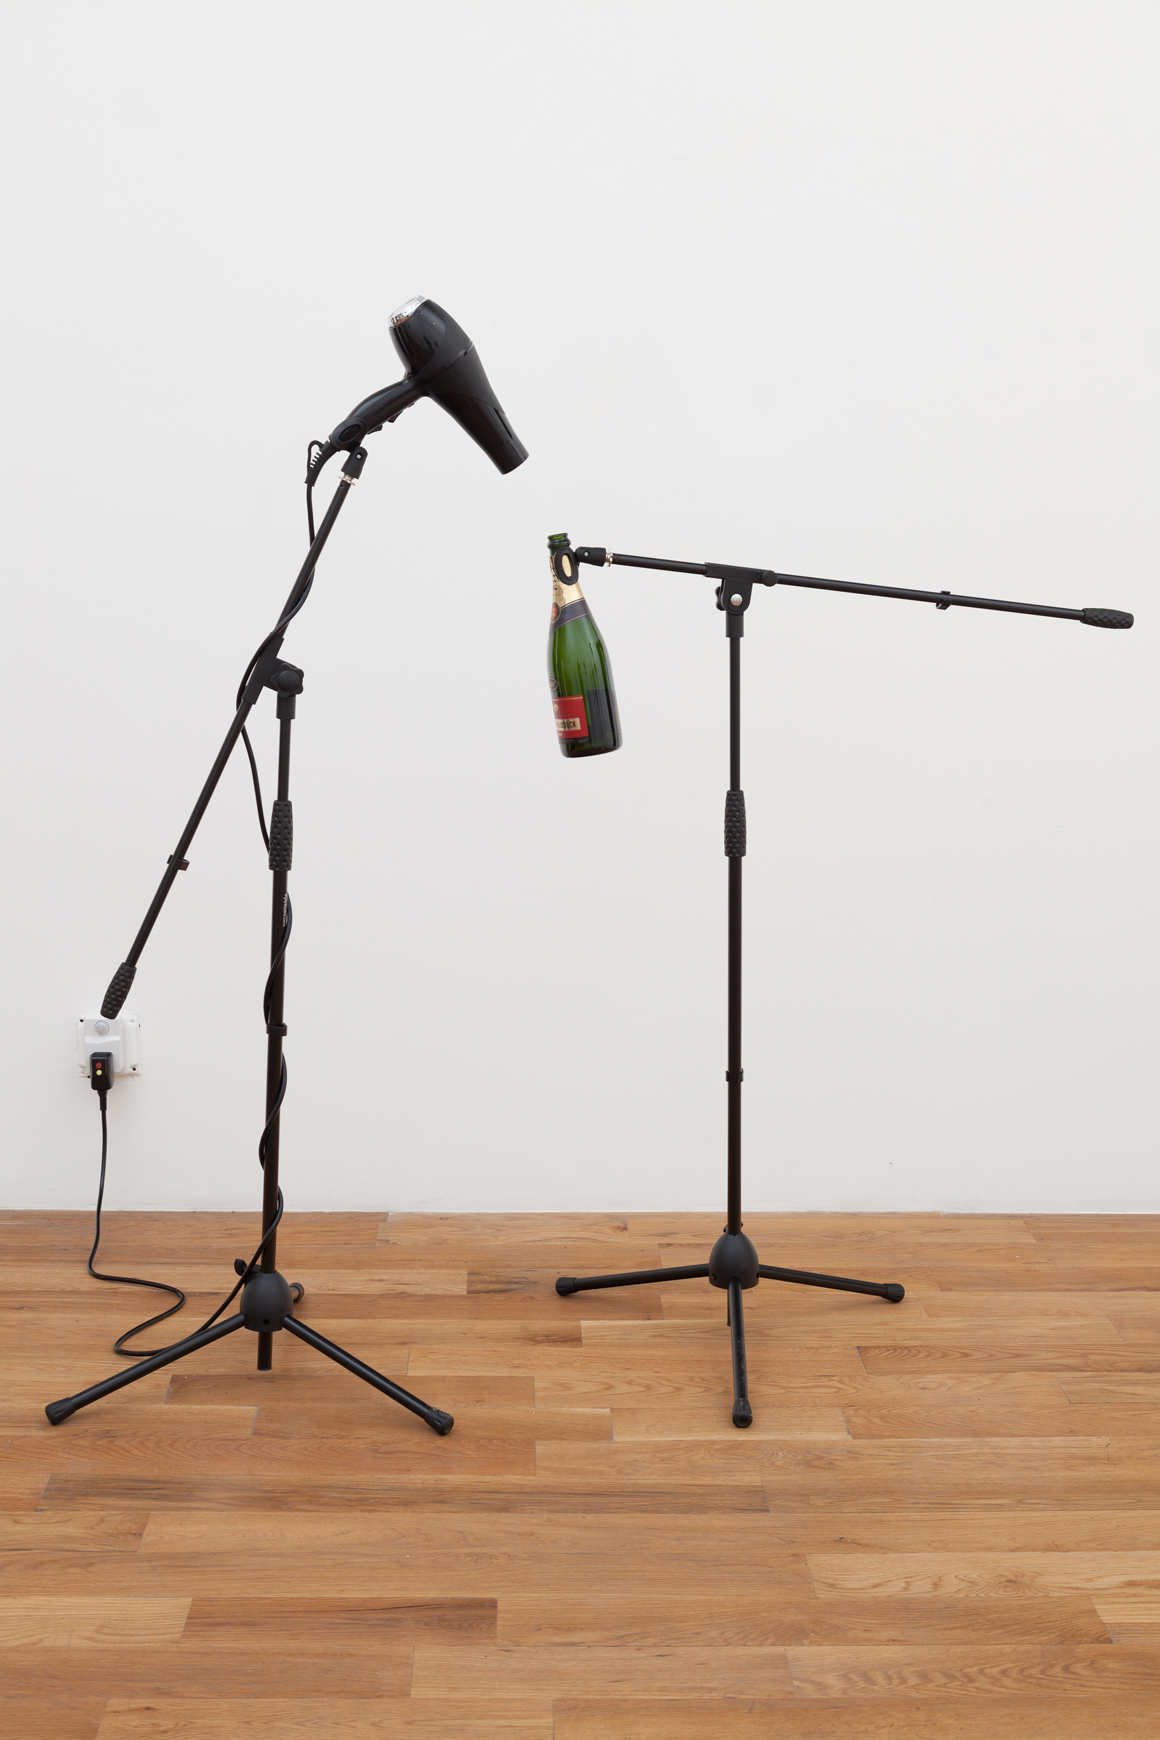 <p><em>Sirens</em><span class='media'>Microphone stands, blowdryer, champagne bottle, motion activated switch</span>Variable<br>2016<br><a class='inquire' href='mailto:info@gildargallery.com?subject=Artwork Inquiry SSCH0001&body=I am interested in finding out more about Sirens by Sarah Schönfeld'>Inquire</a></p>